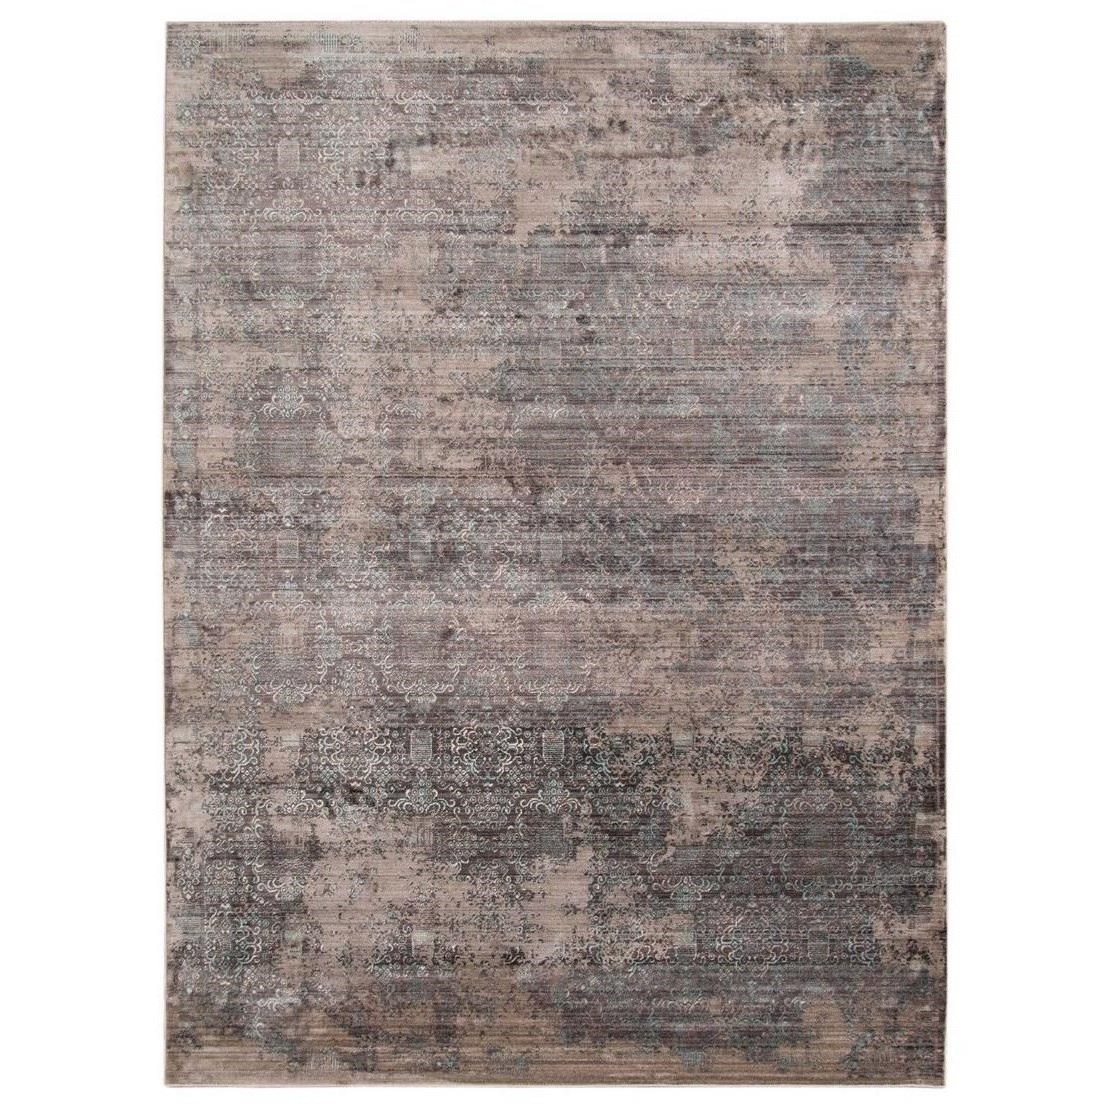 Rugs Calandria Gray 5 X 7 Rug by Uttermost at Mueller Furniture